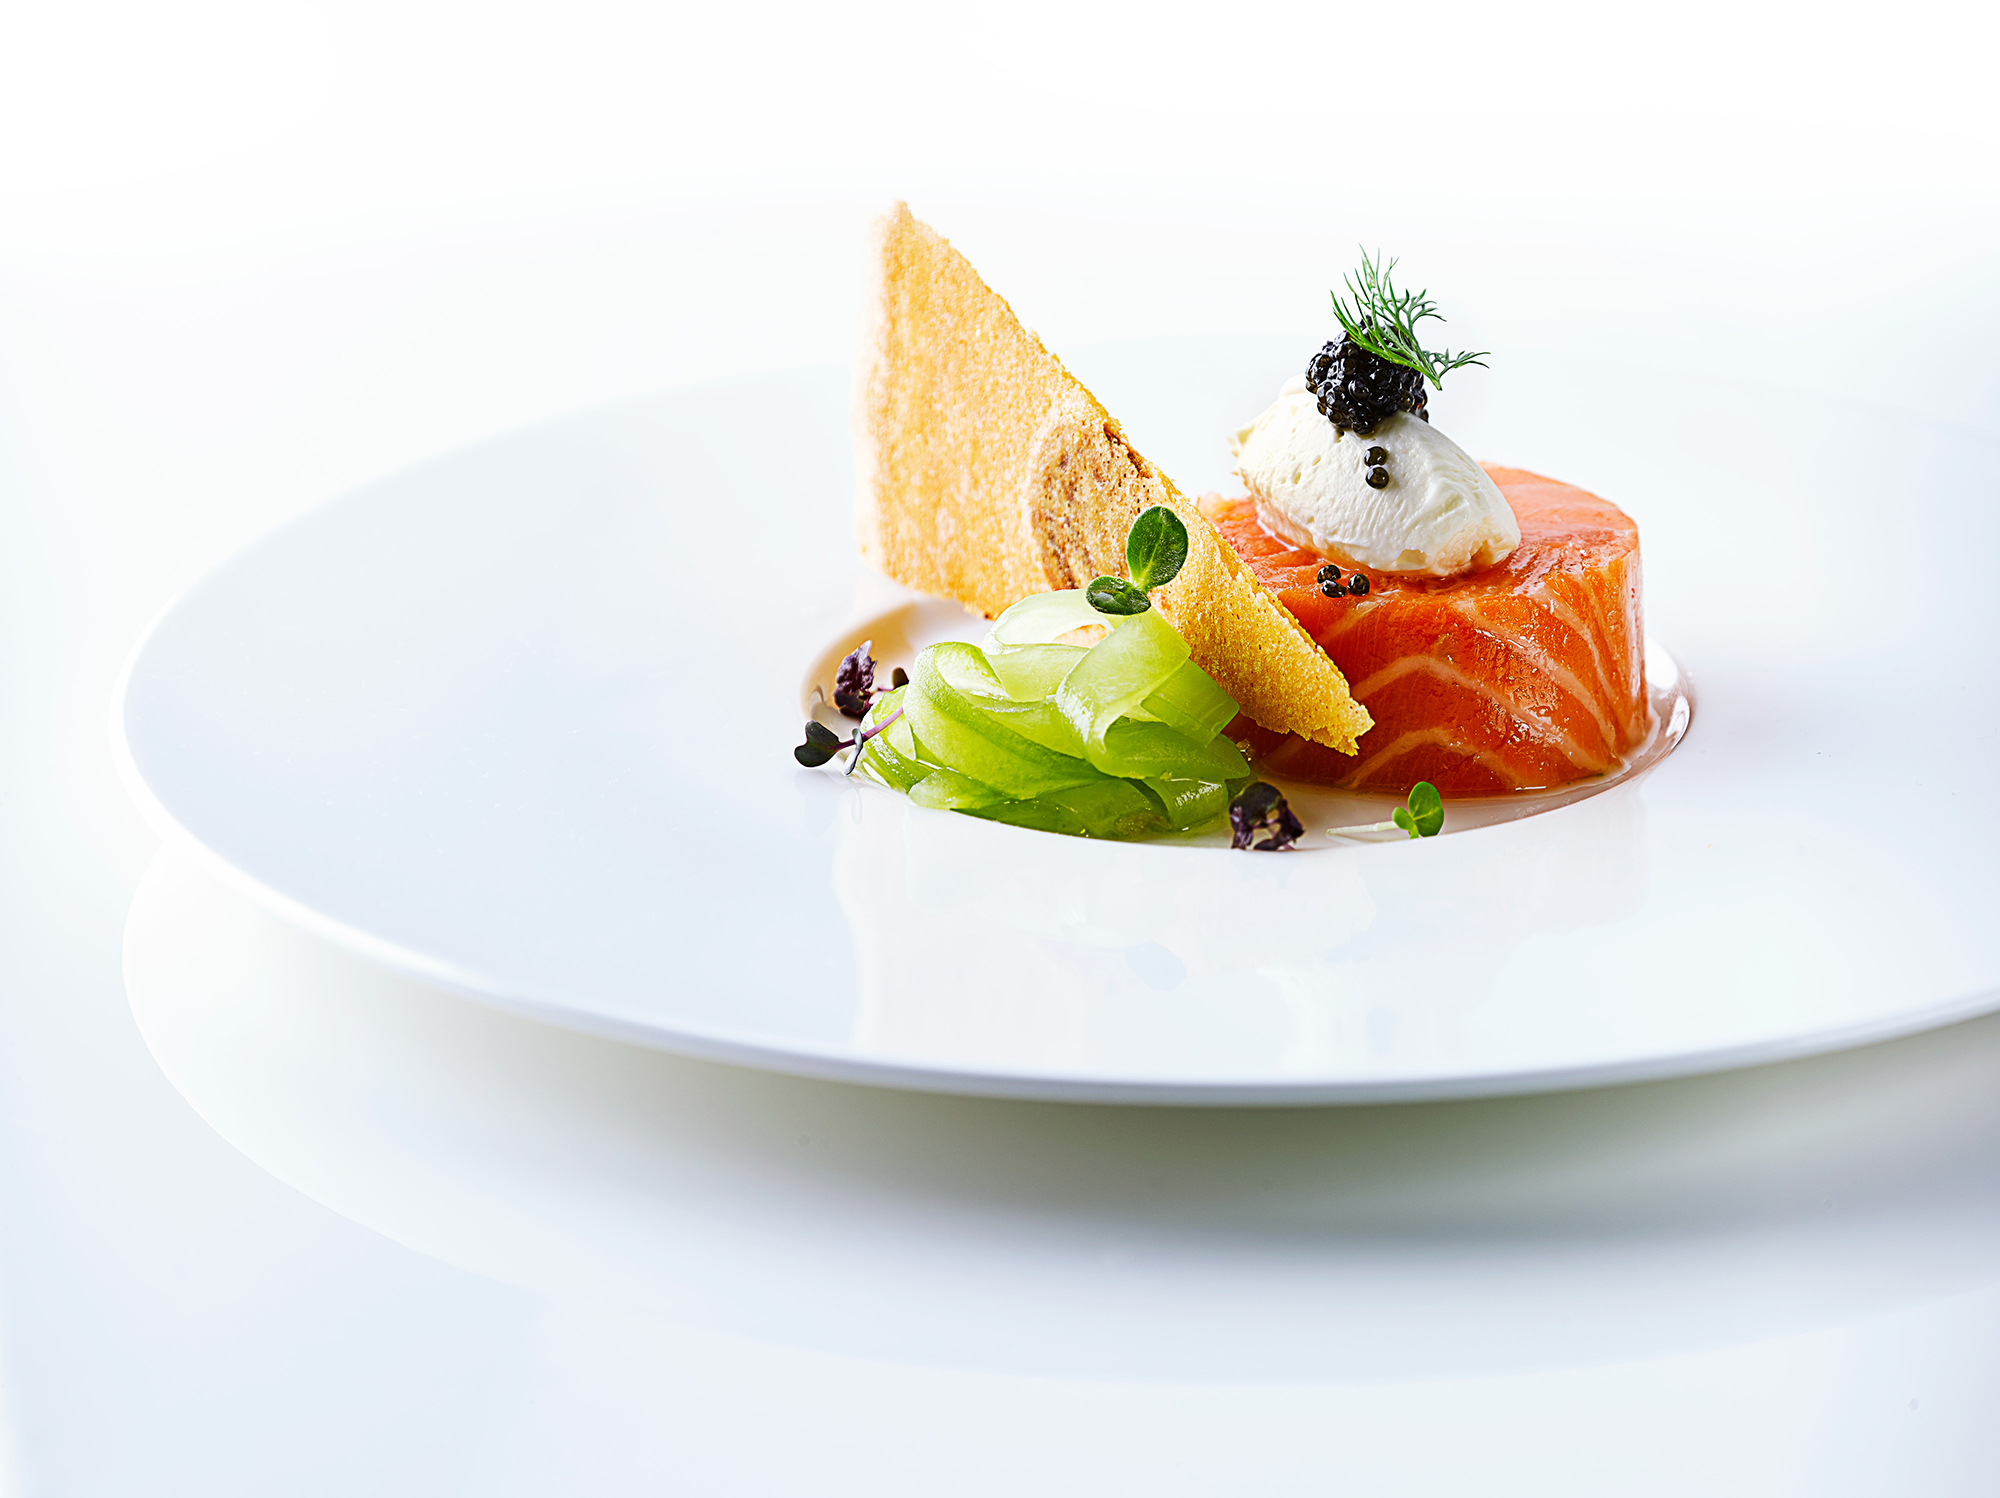 Smoked salmon on white dish by London Food Photographer Michael Mchaels